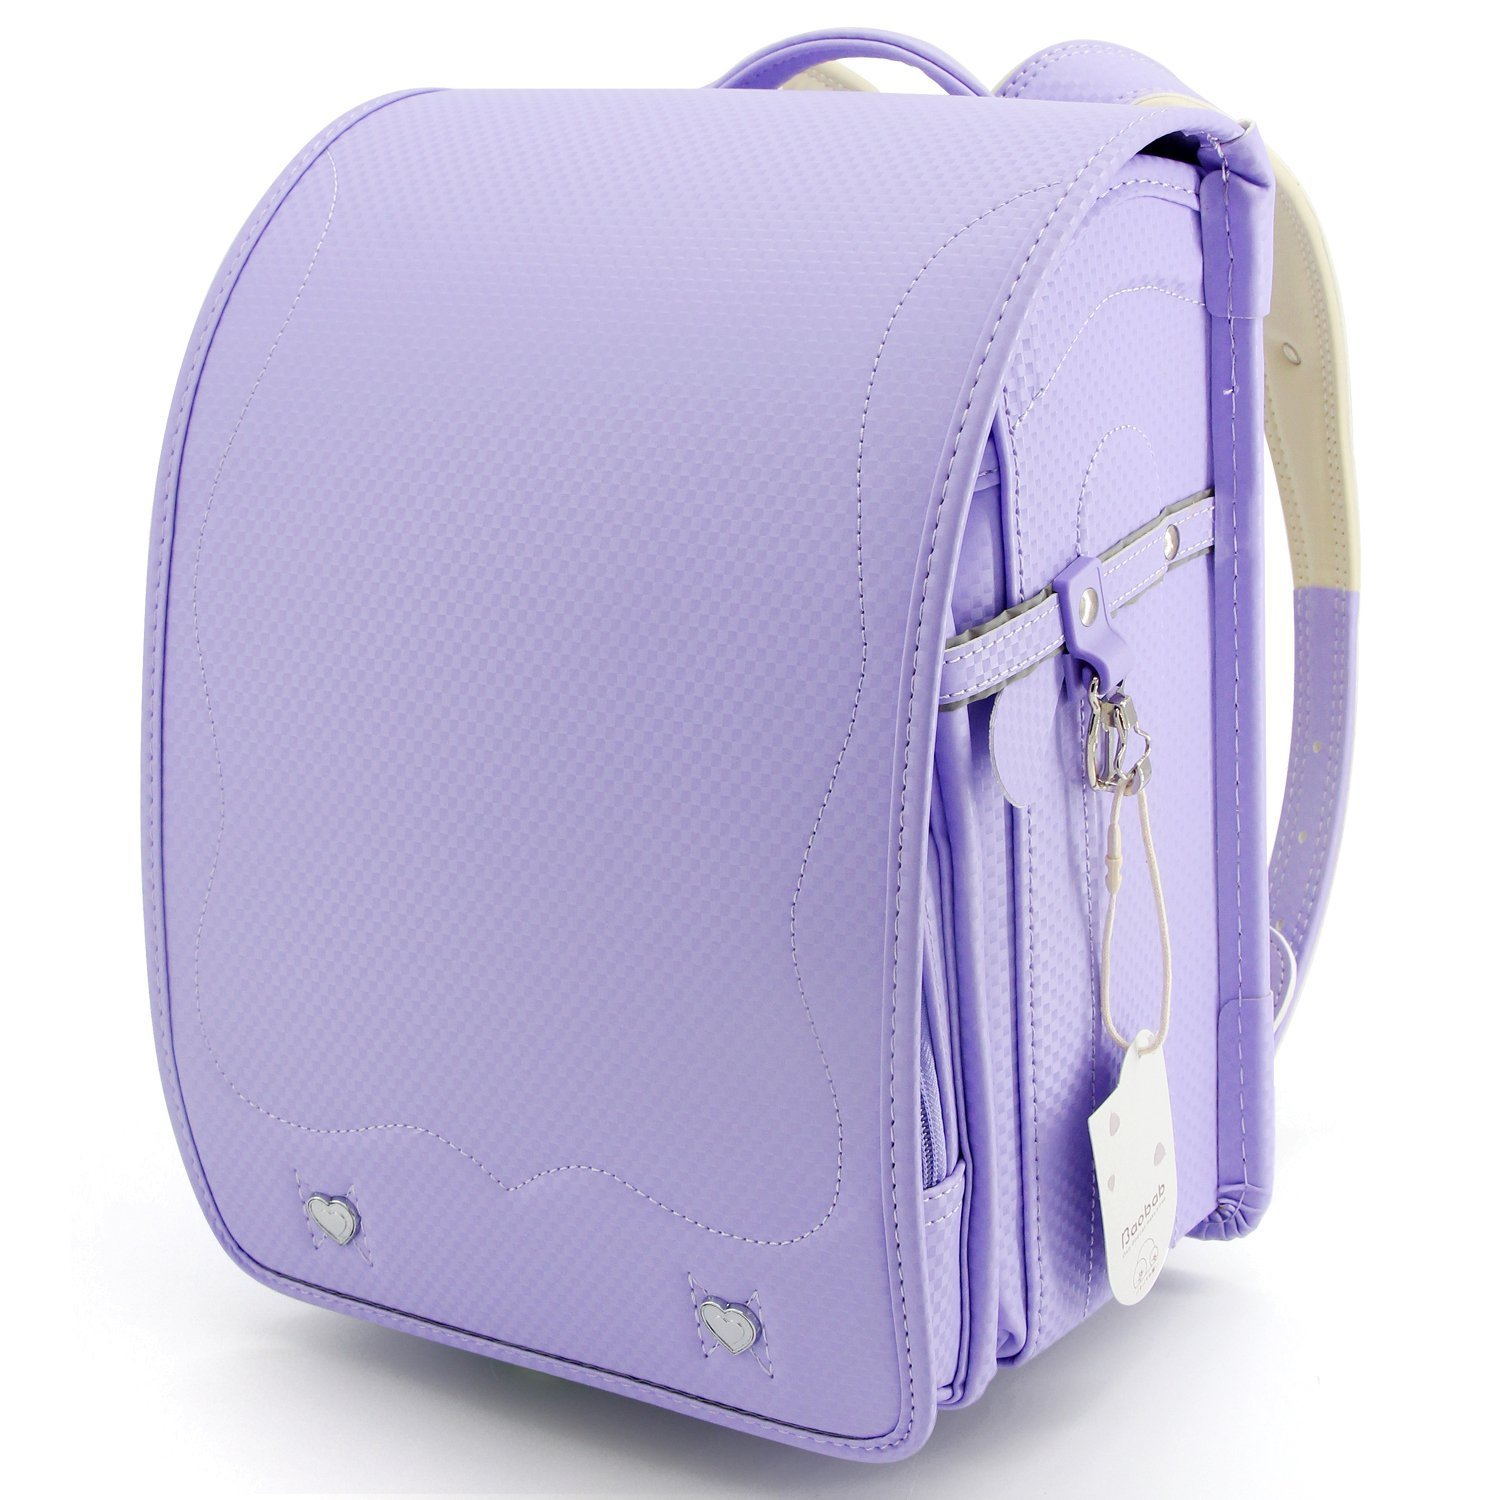 Ransel Randoseru upscale full automatic Japanese schoolbags for girls and boys purple